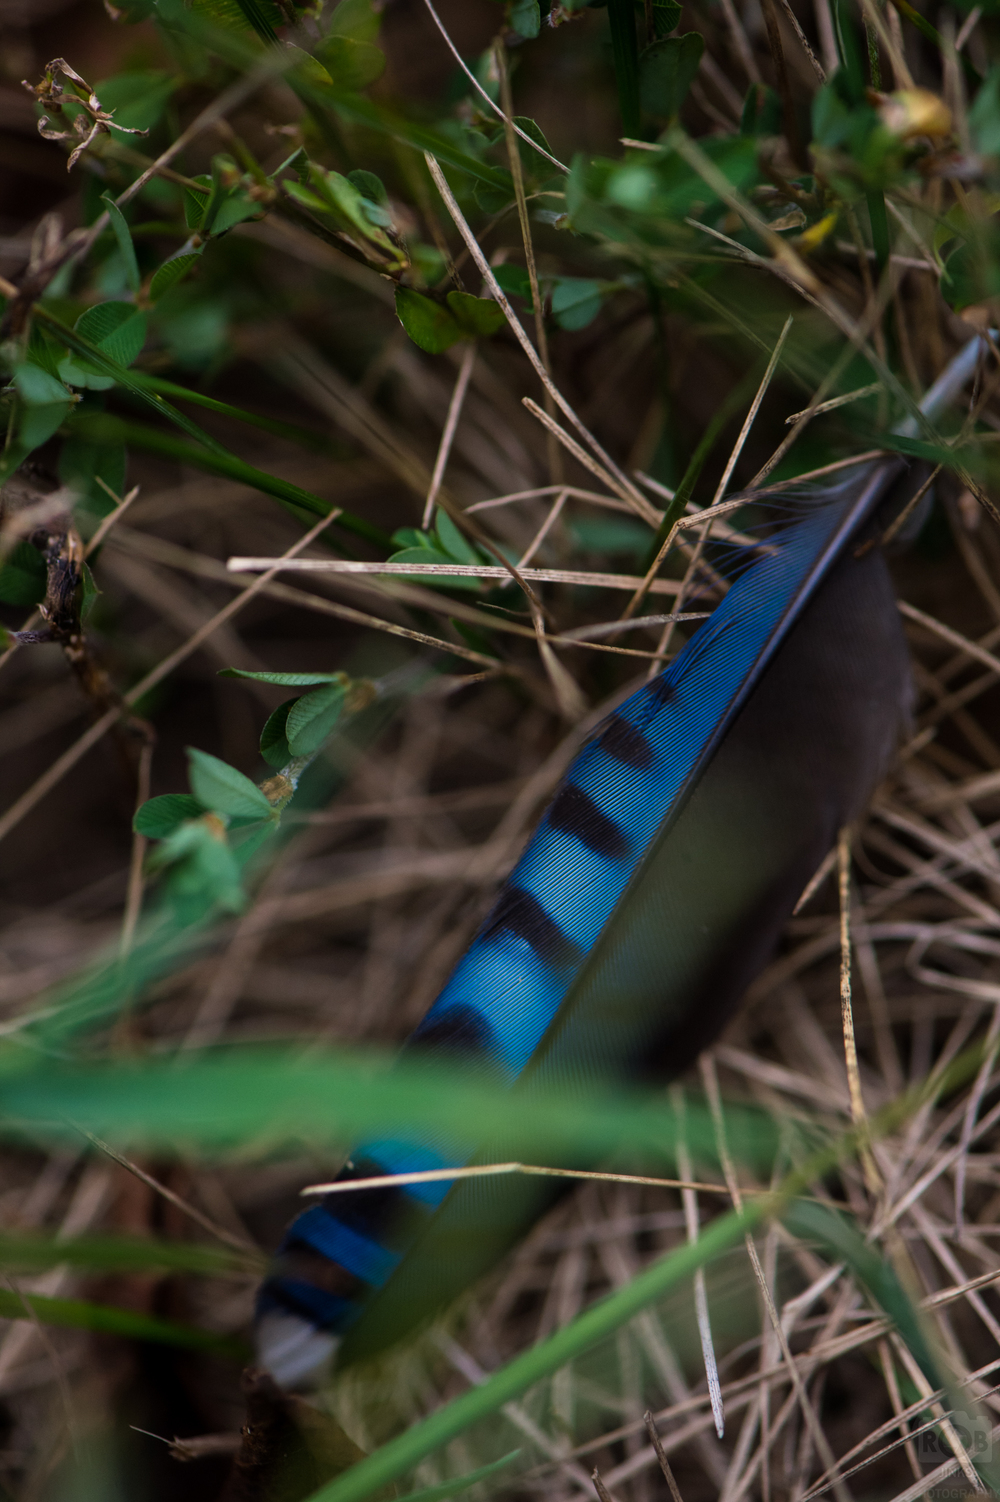 The Blue Jay feather as found on the ground.